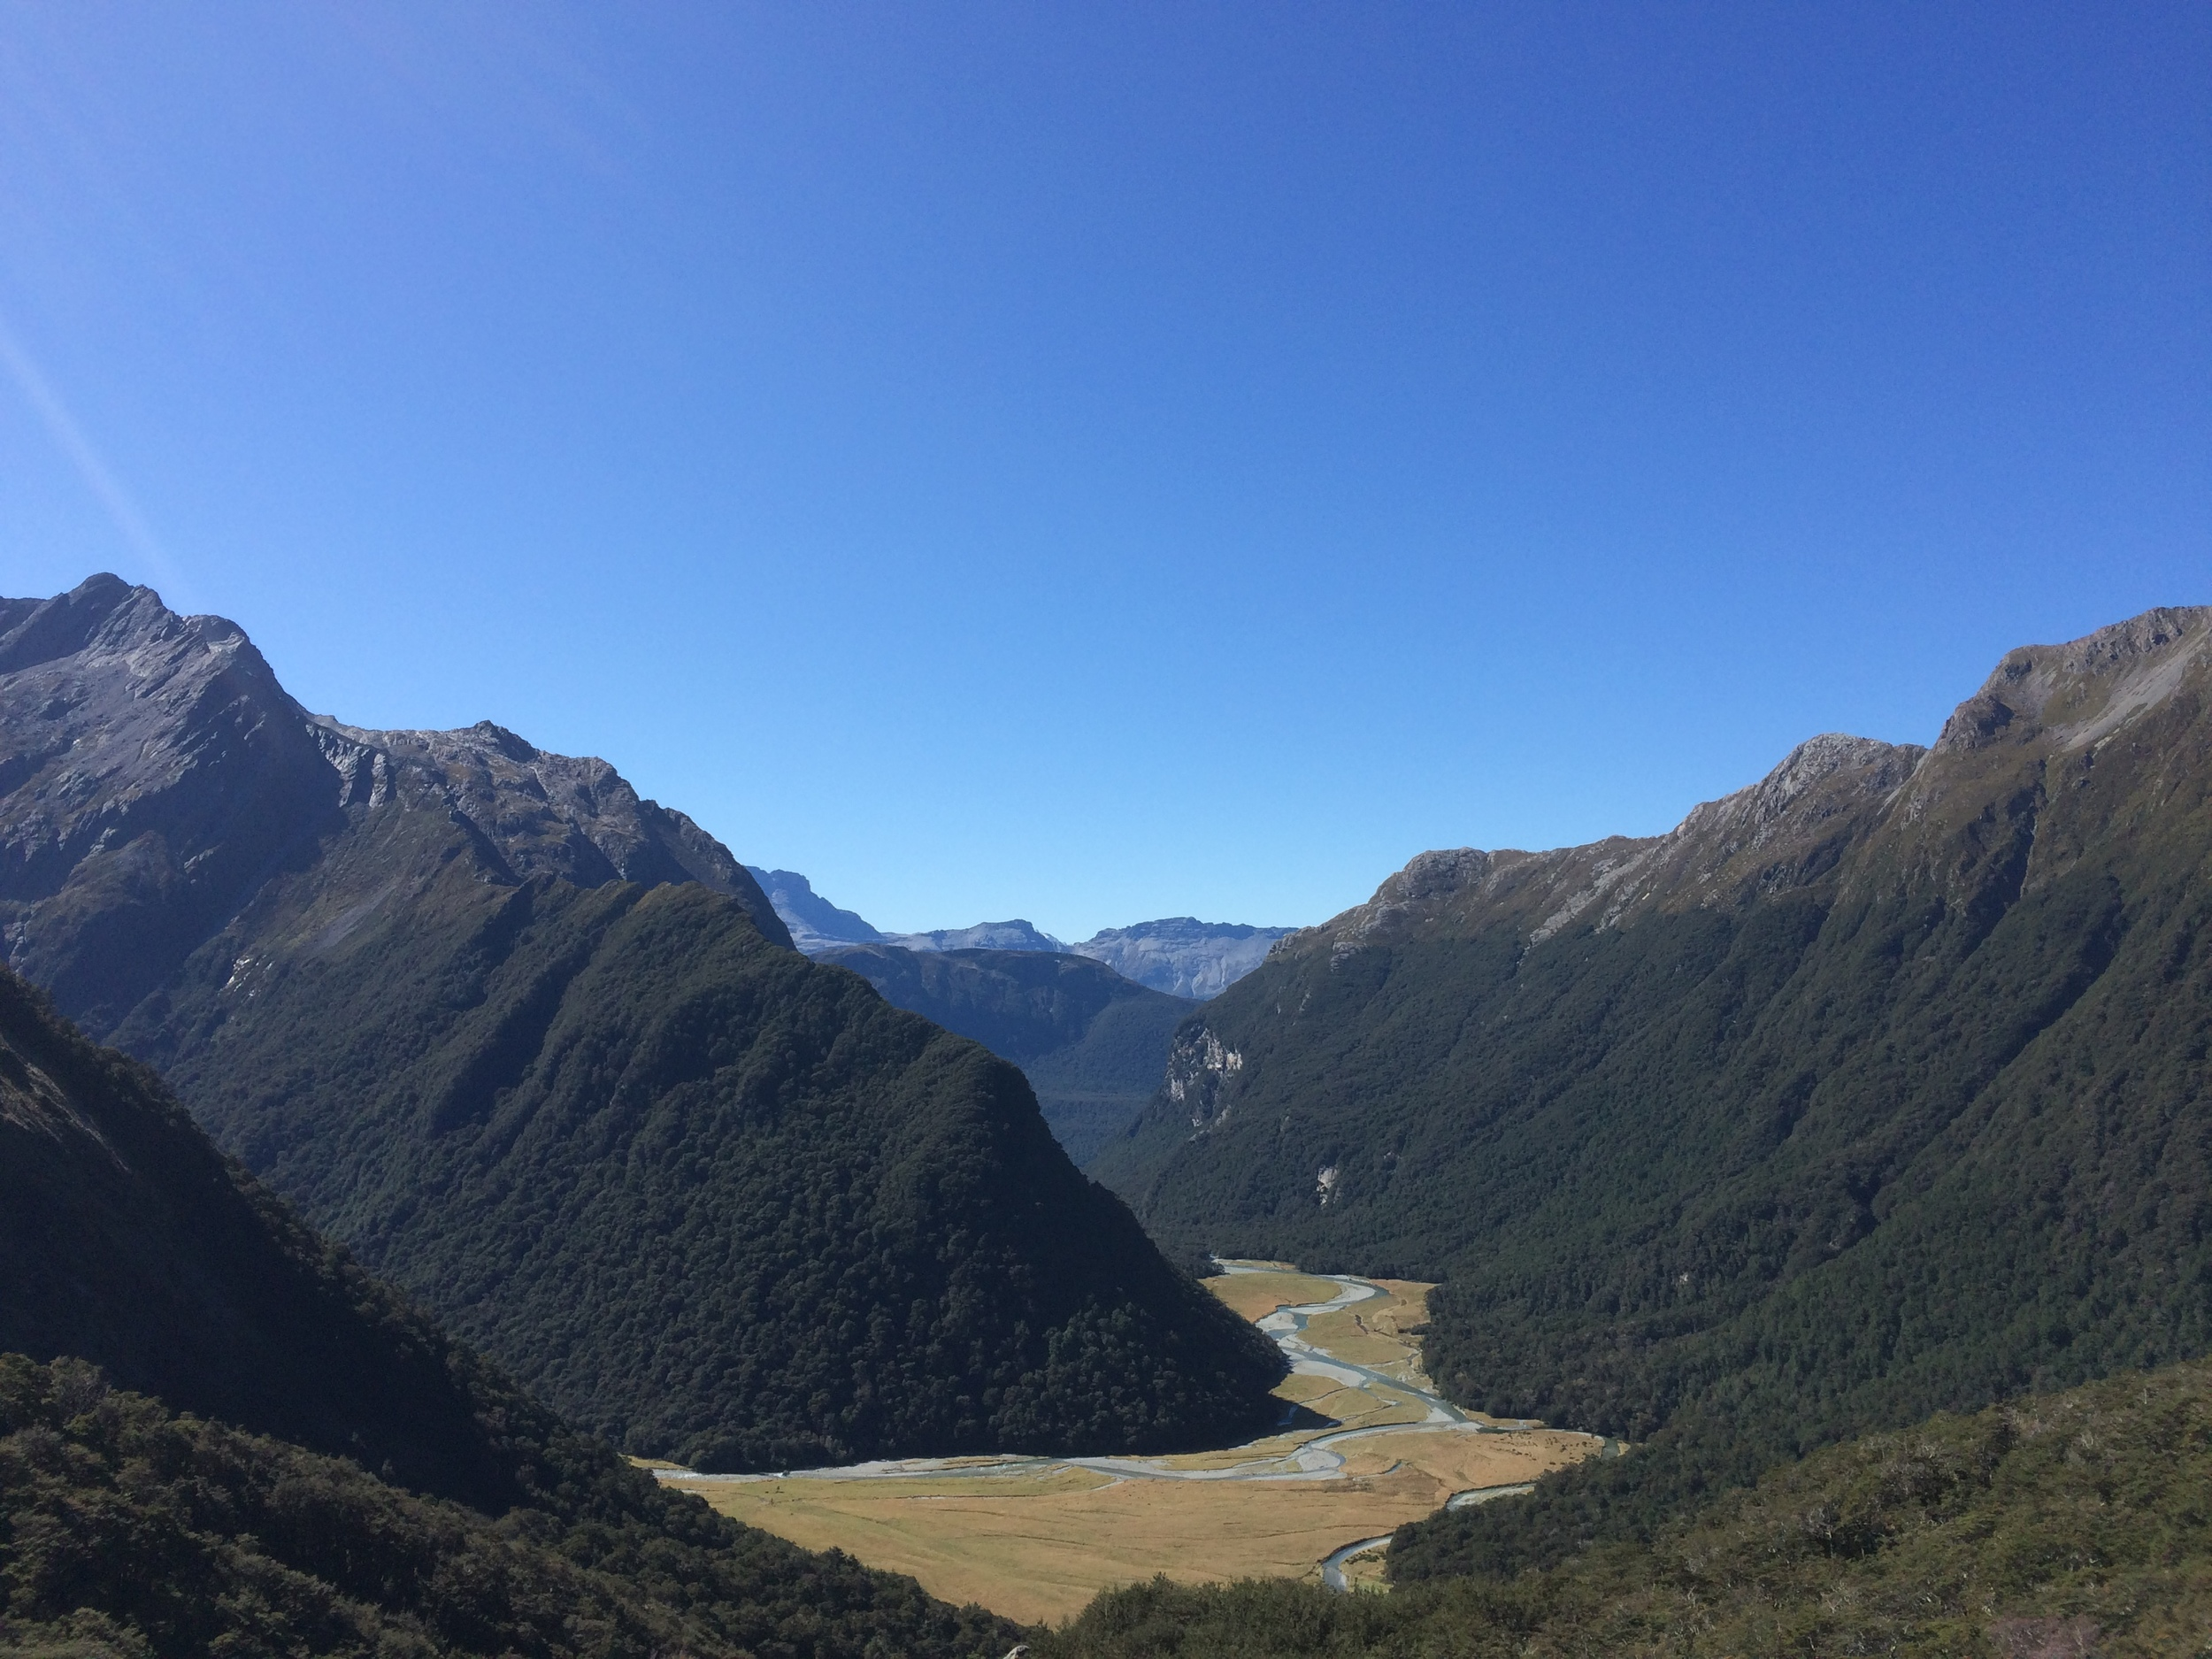 Looking down on the prairie land of the Routeburn